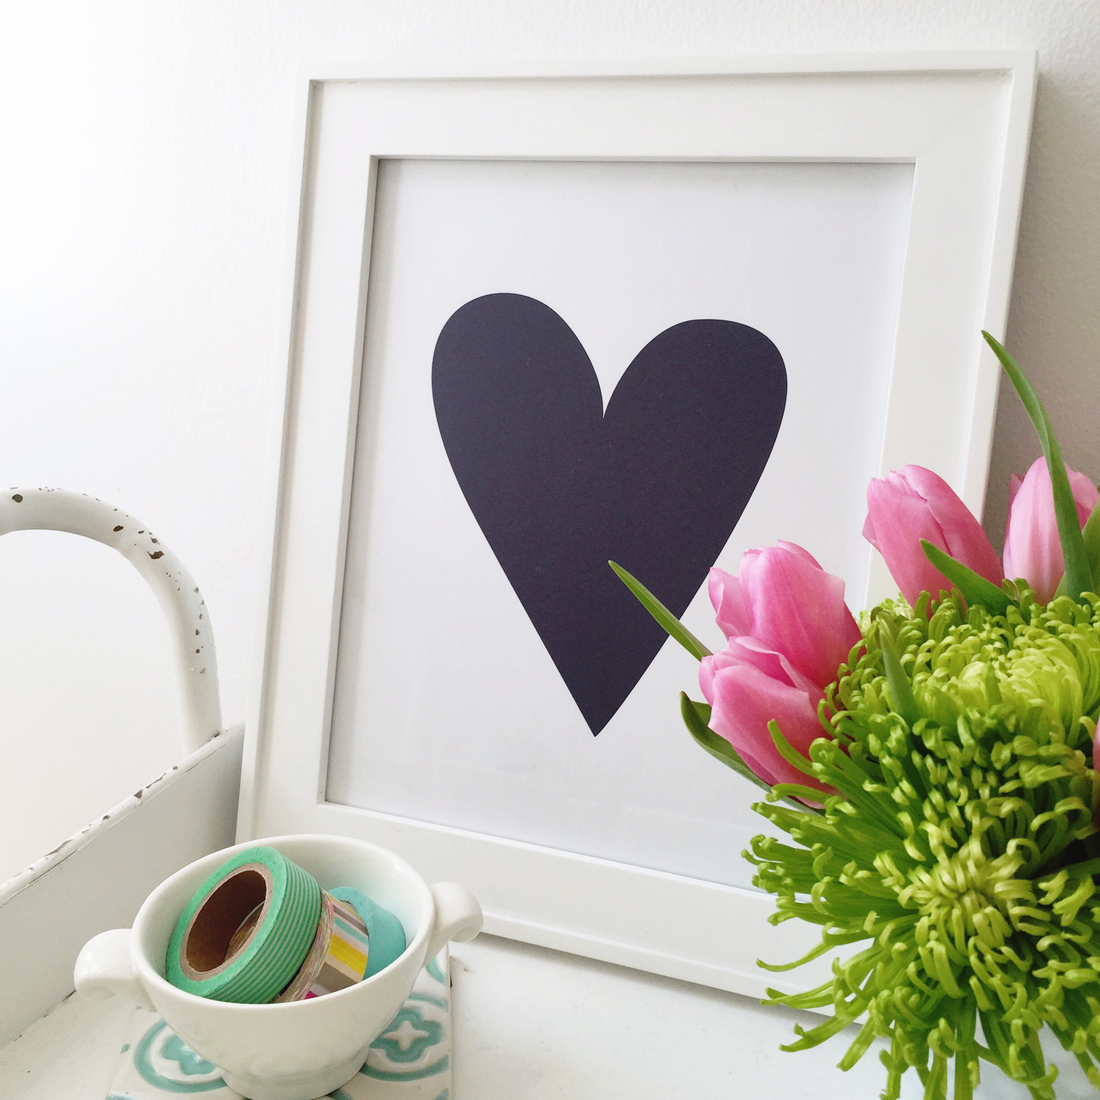 Free: Navy Heart Printable 8.5x11-inches • by Amanda Gomes of Delighted Creative Co